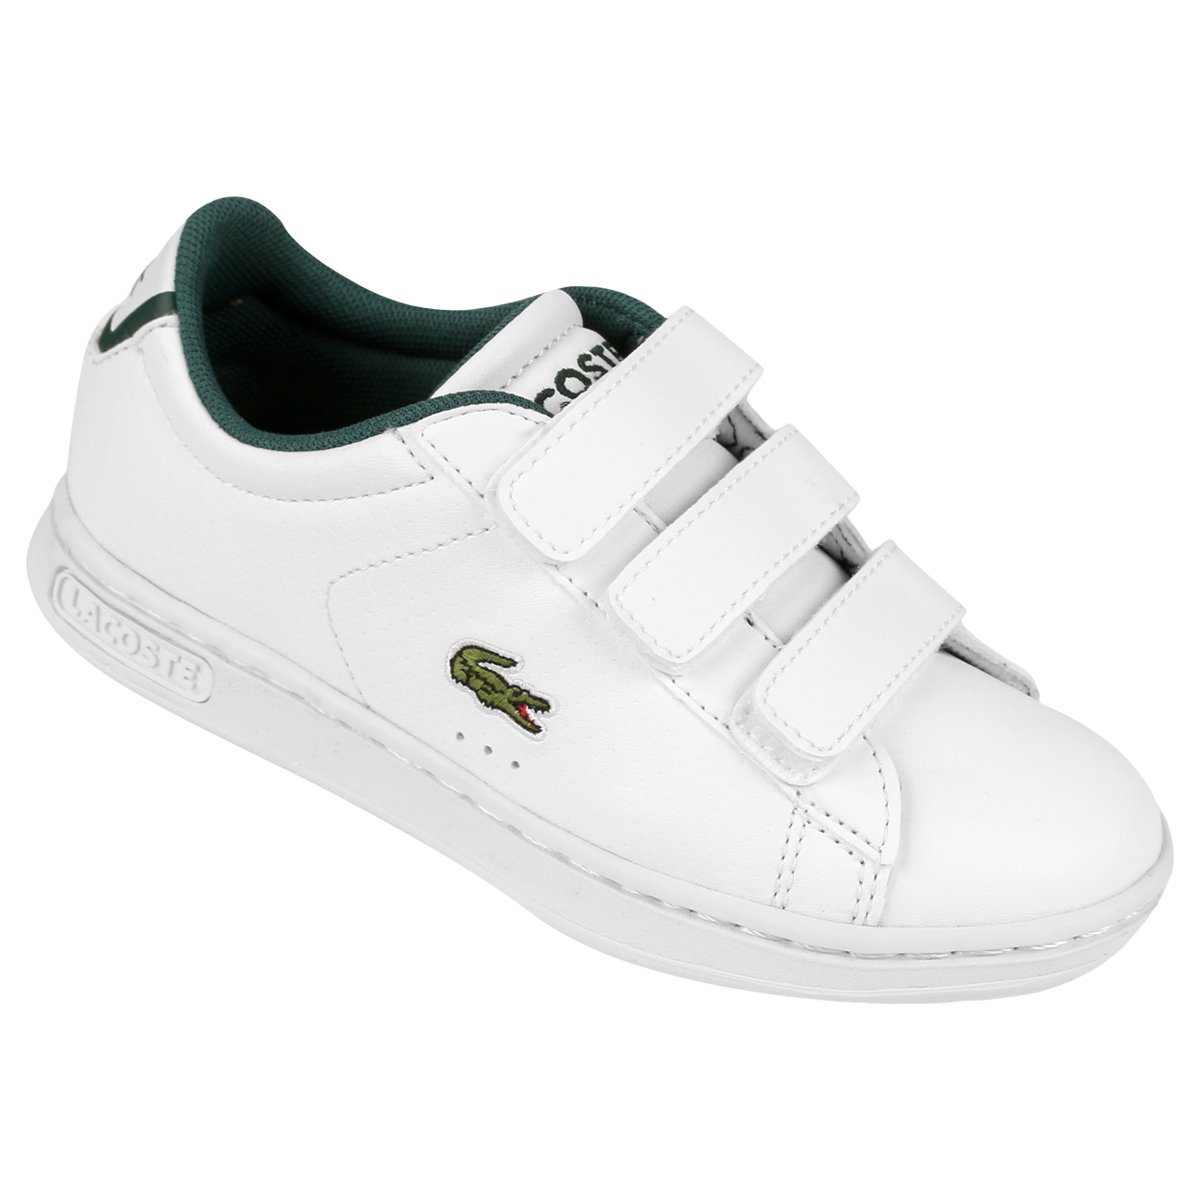 dbfca28dc1412 Tênis Lacoste Carnaby Evo Rei Infantil - Compre Agora   Netshoes